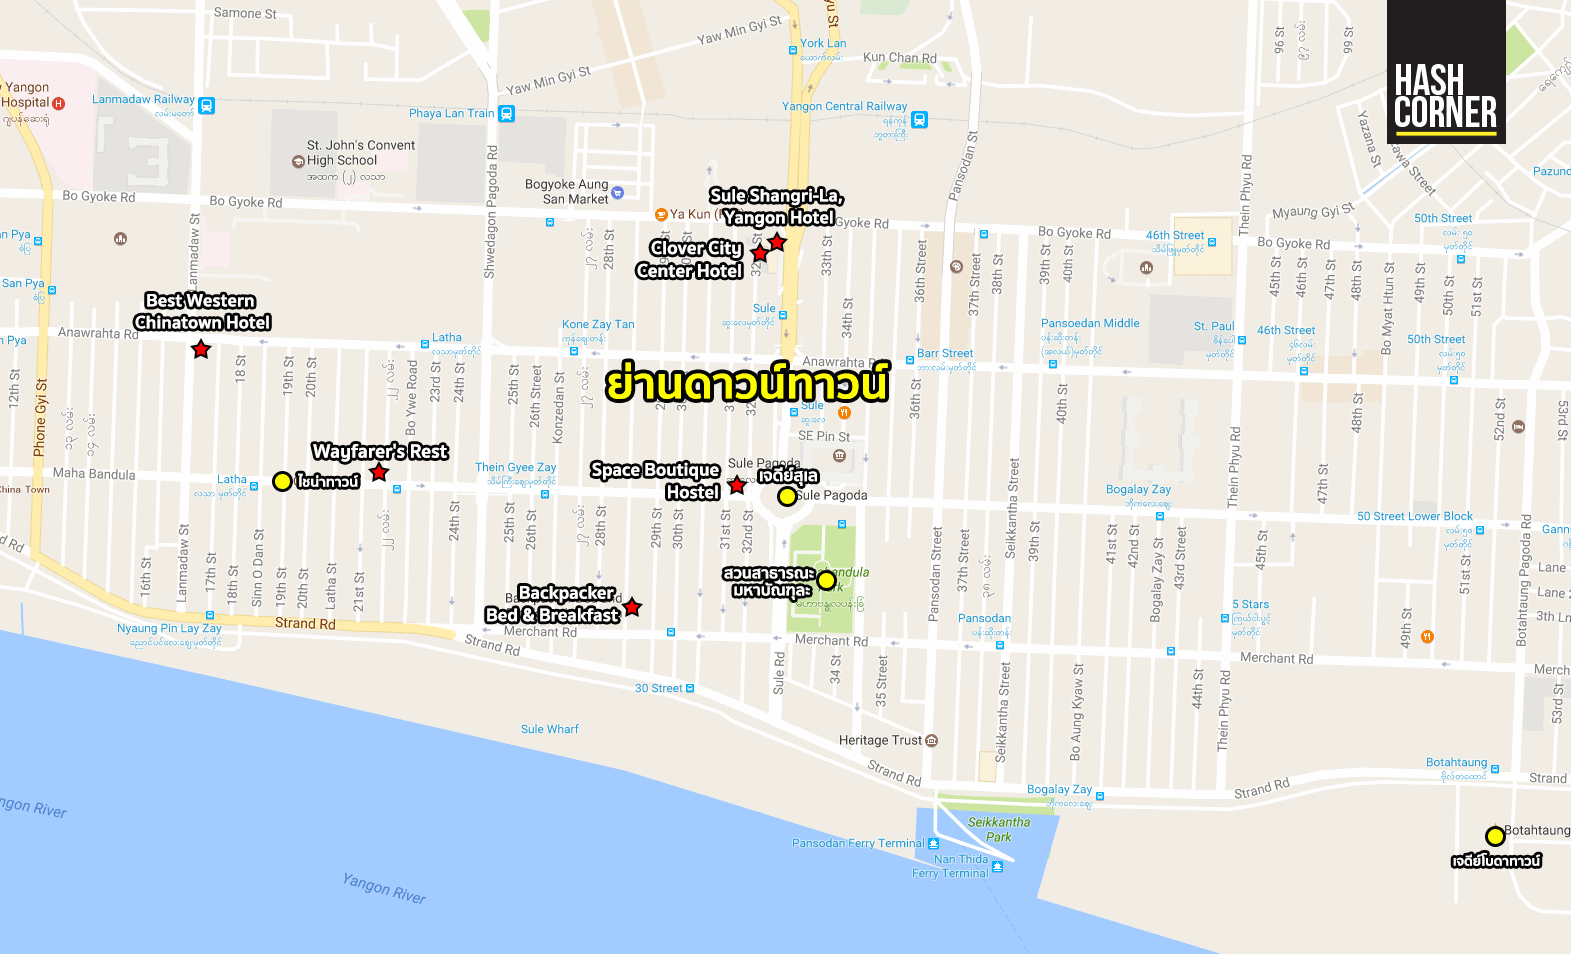 yangon-hotel-map